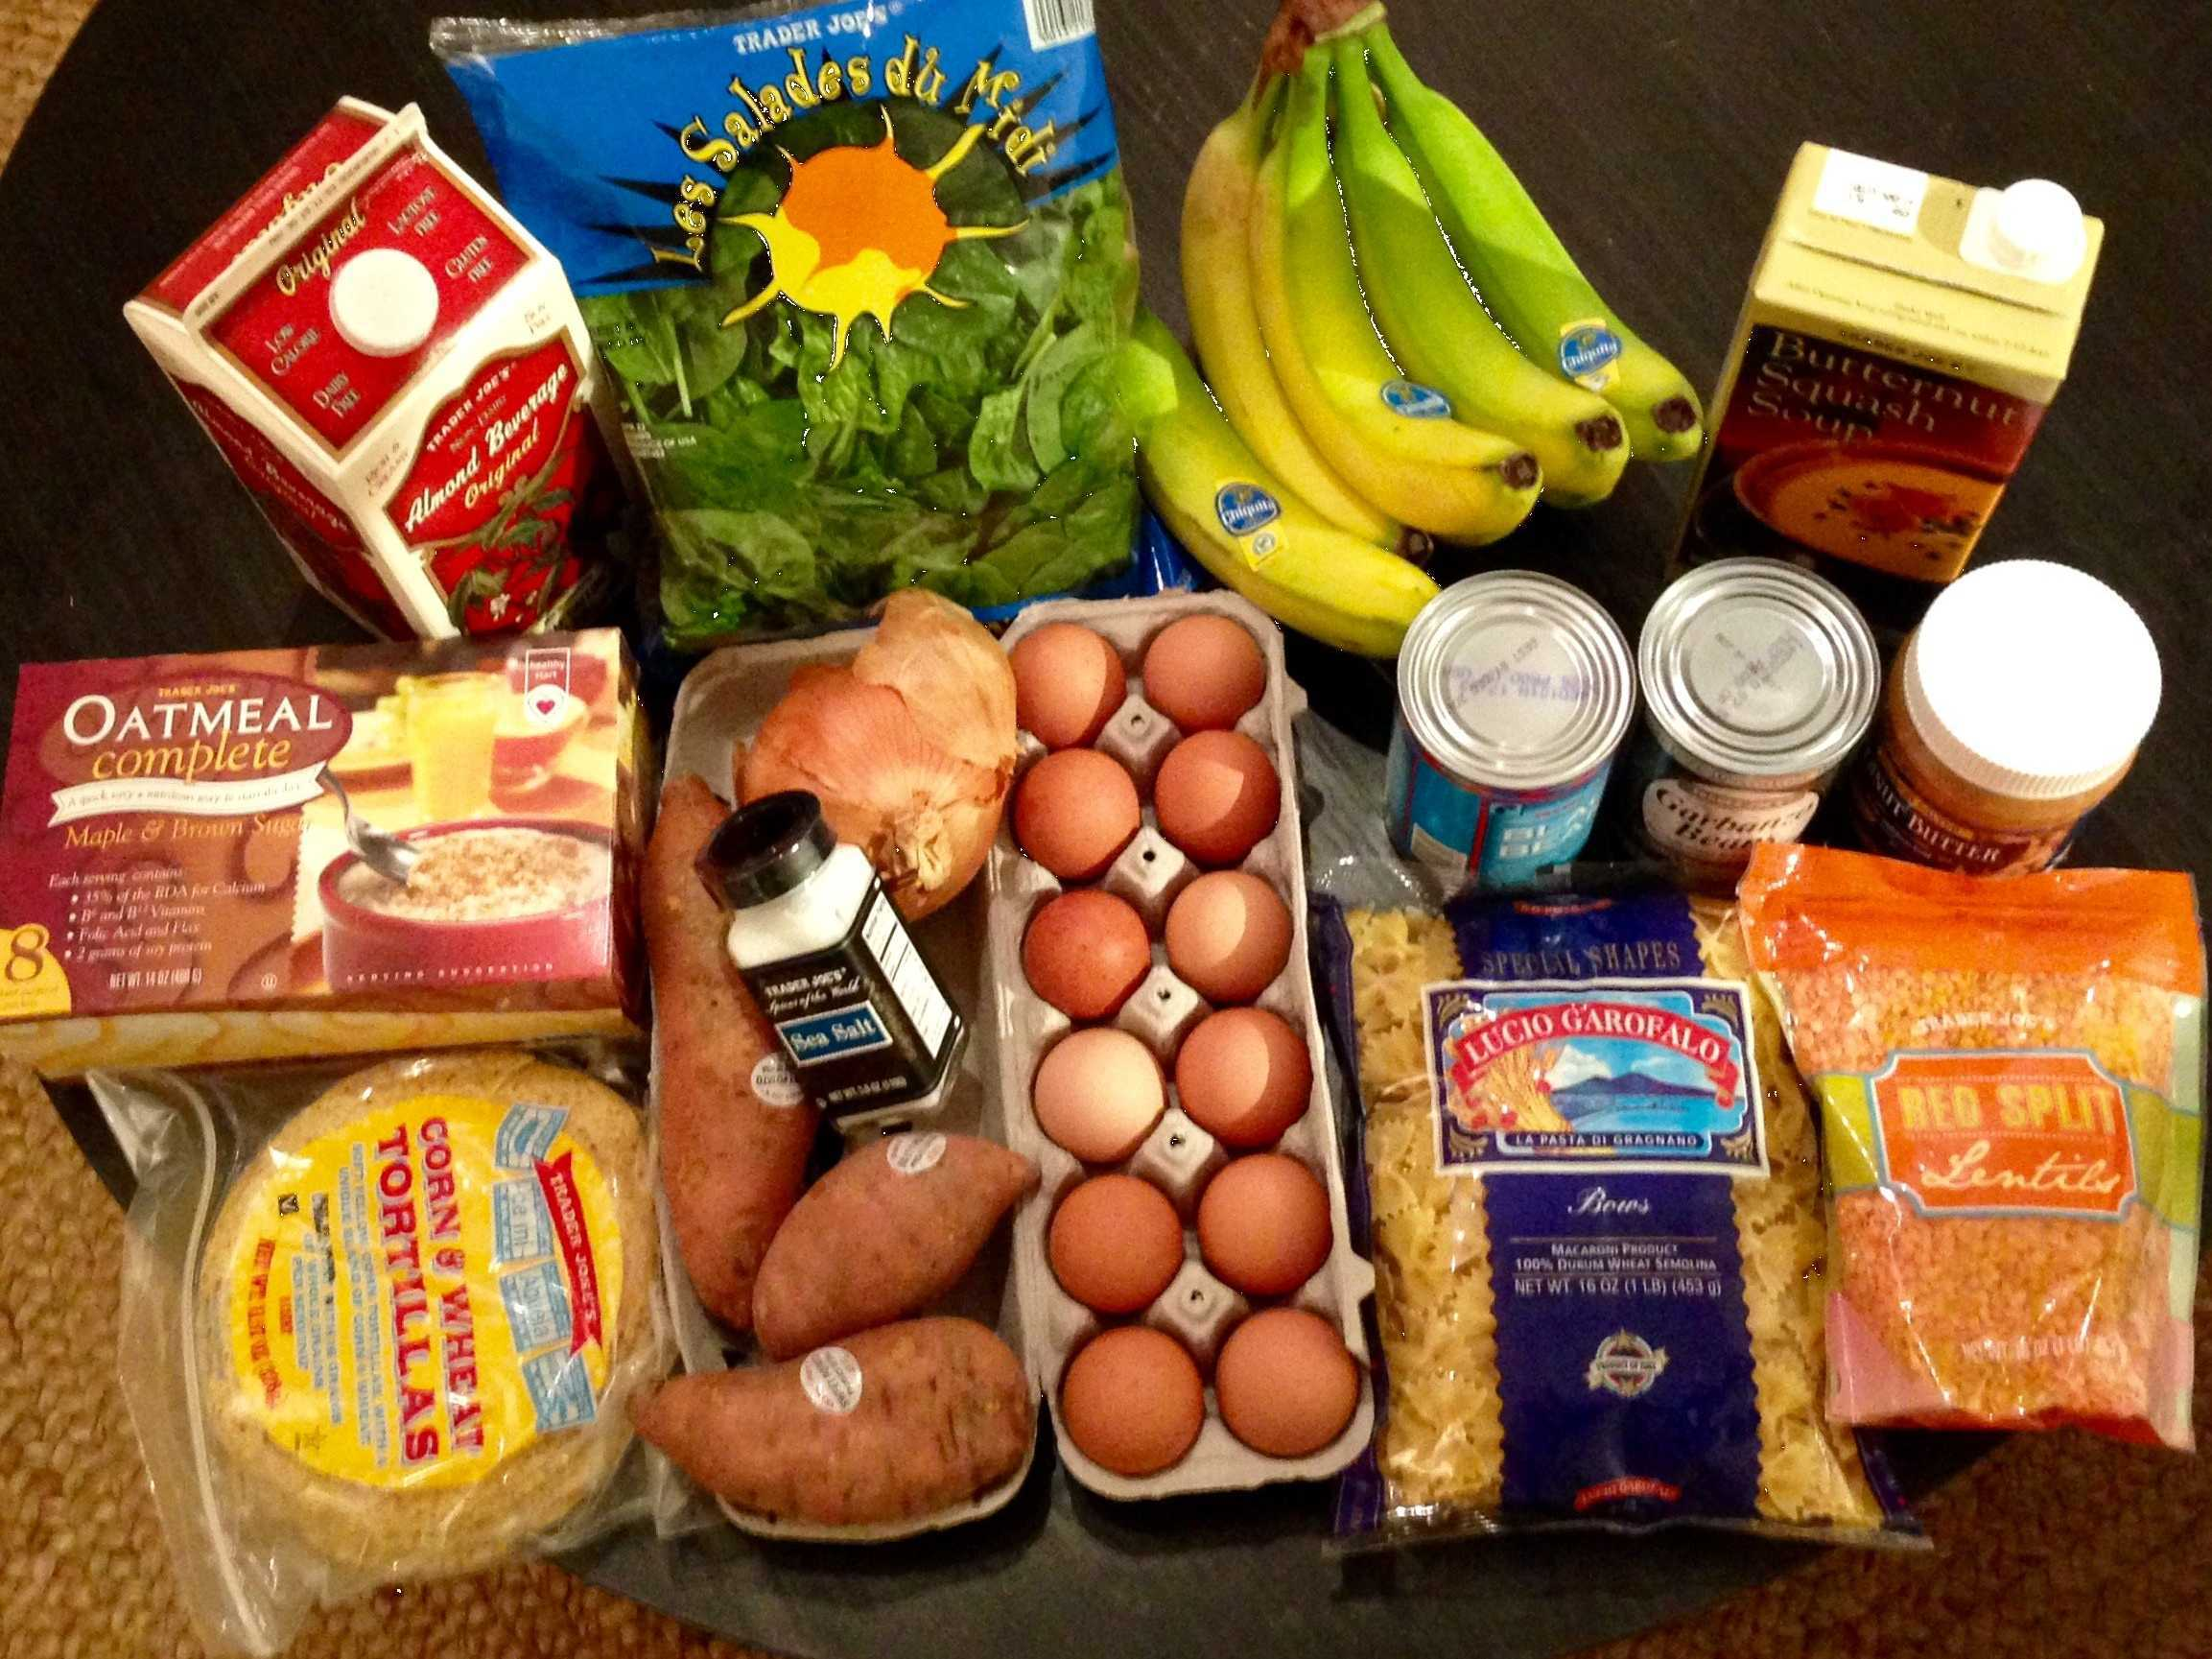 List of Eligible Food Stamp Items - Food Stamps Now